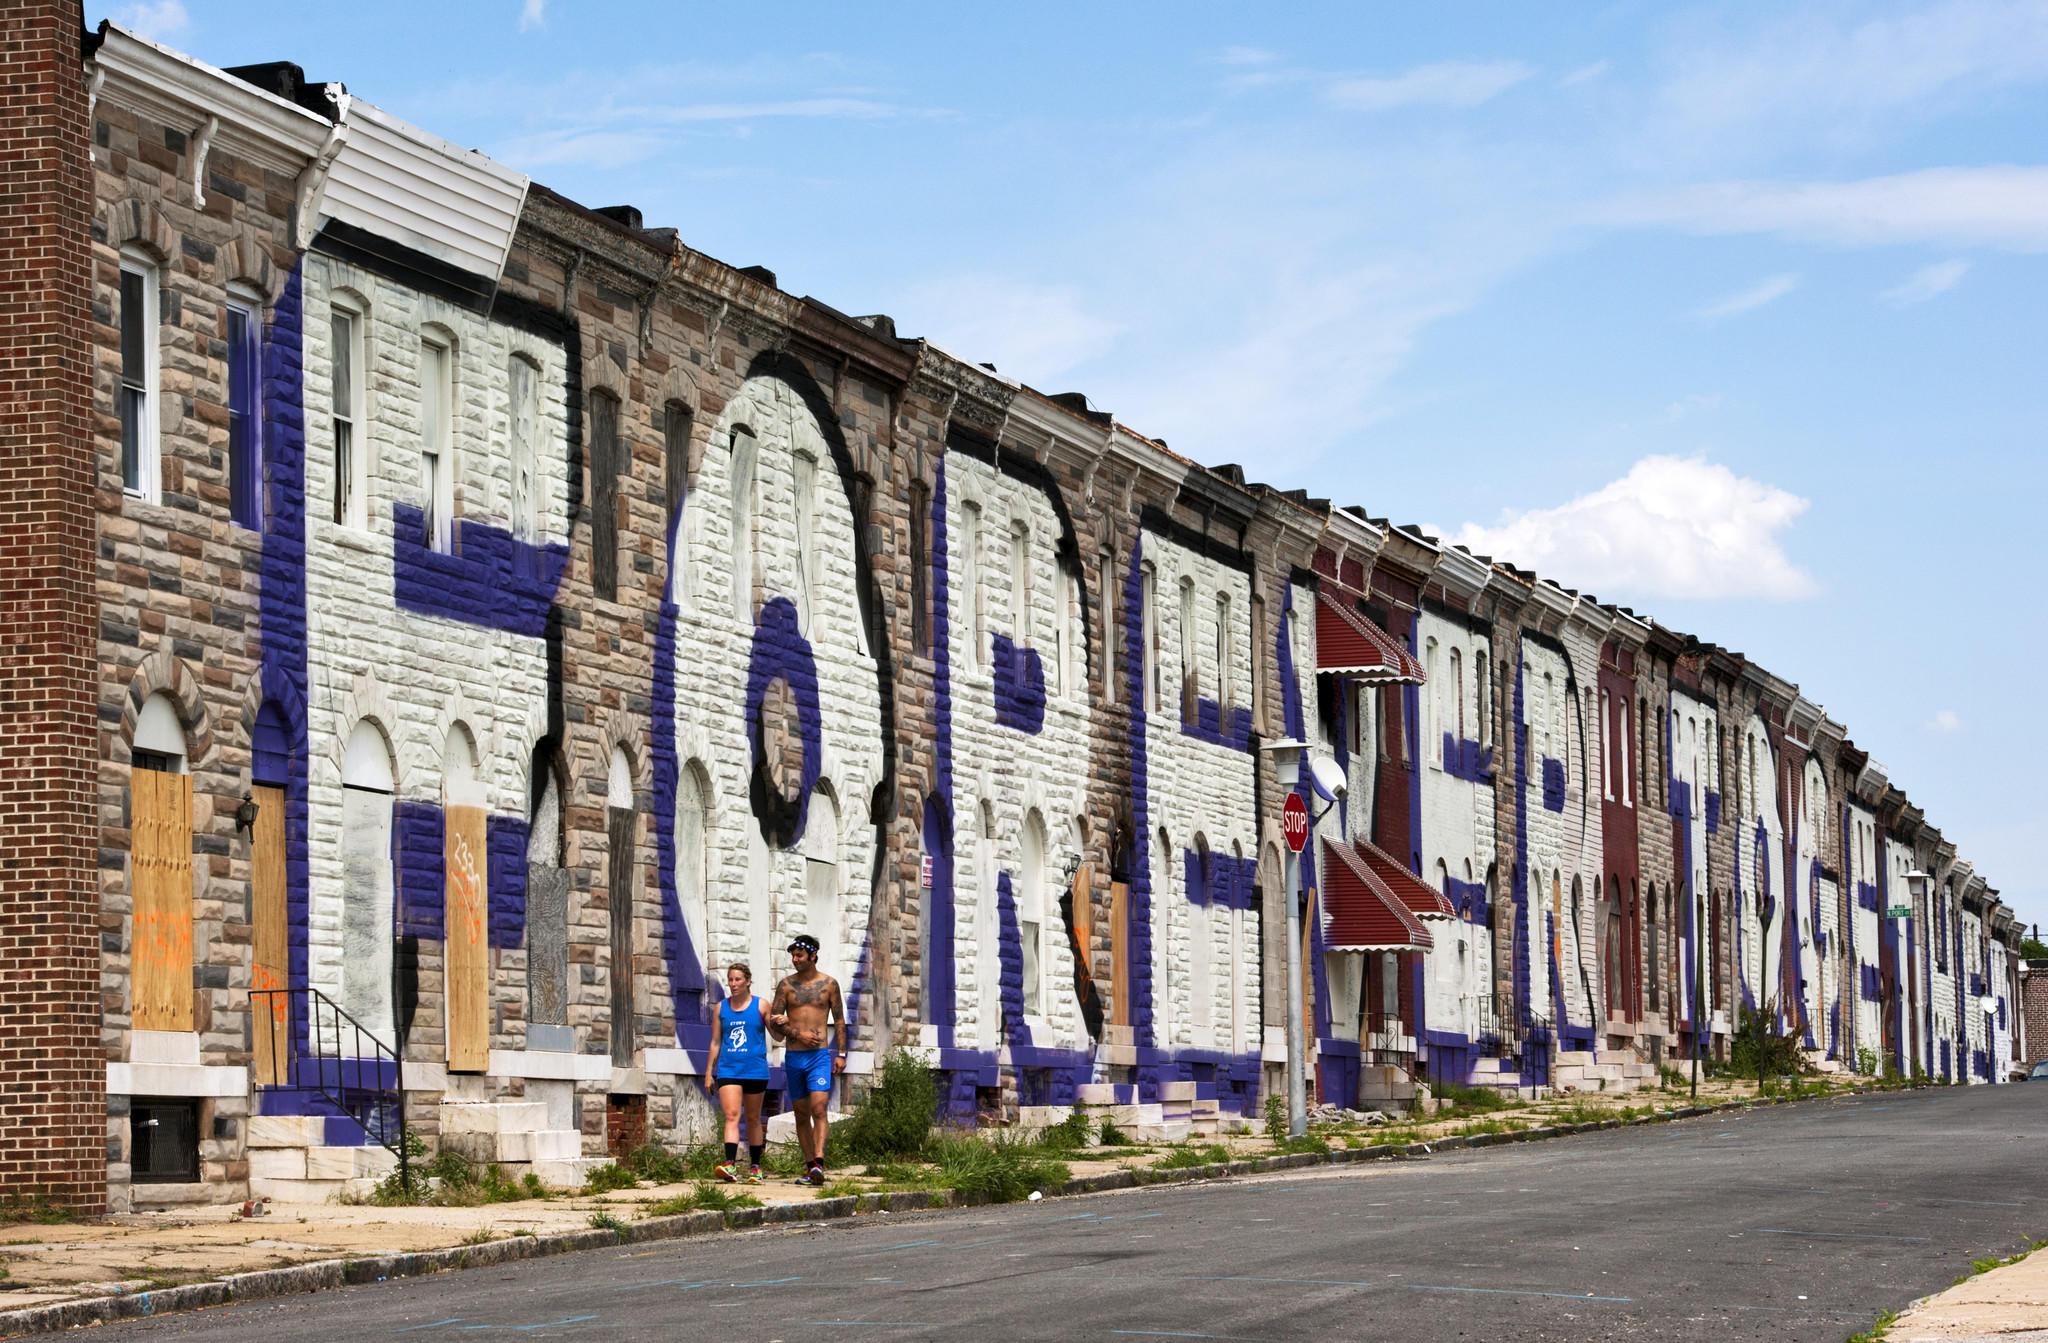 Baltimore announces 39 love letter 39 mural project by stephen for City mural projects